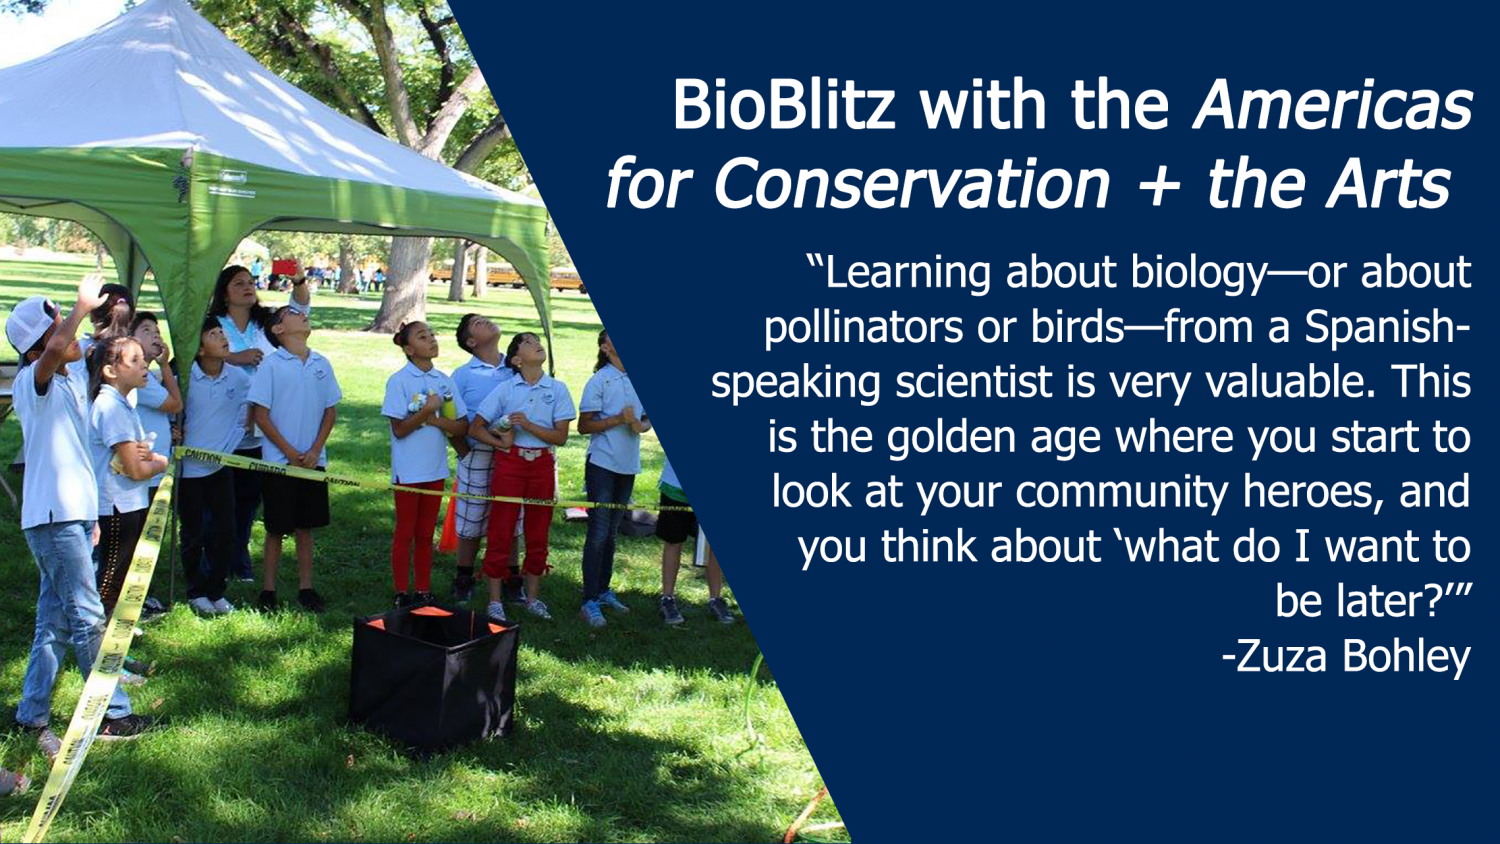 "BioBlitz with the Americas for Conservation + the Arts: ""Learning about biology-or about pollinators or birds-from a Spanish-speaking scientist is very valuable. - Zuza Bohley"